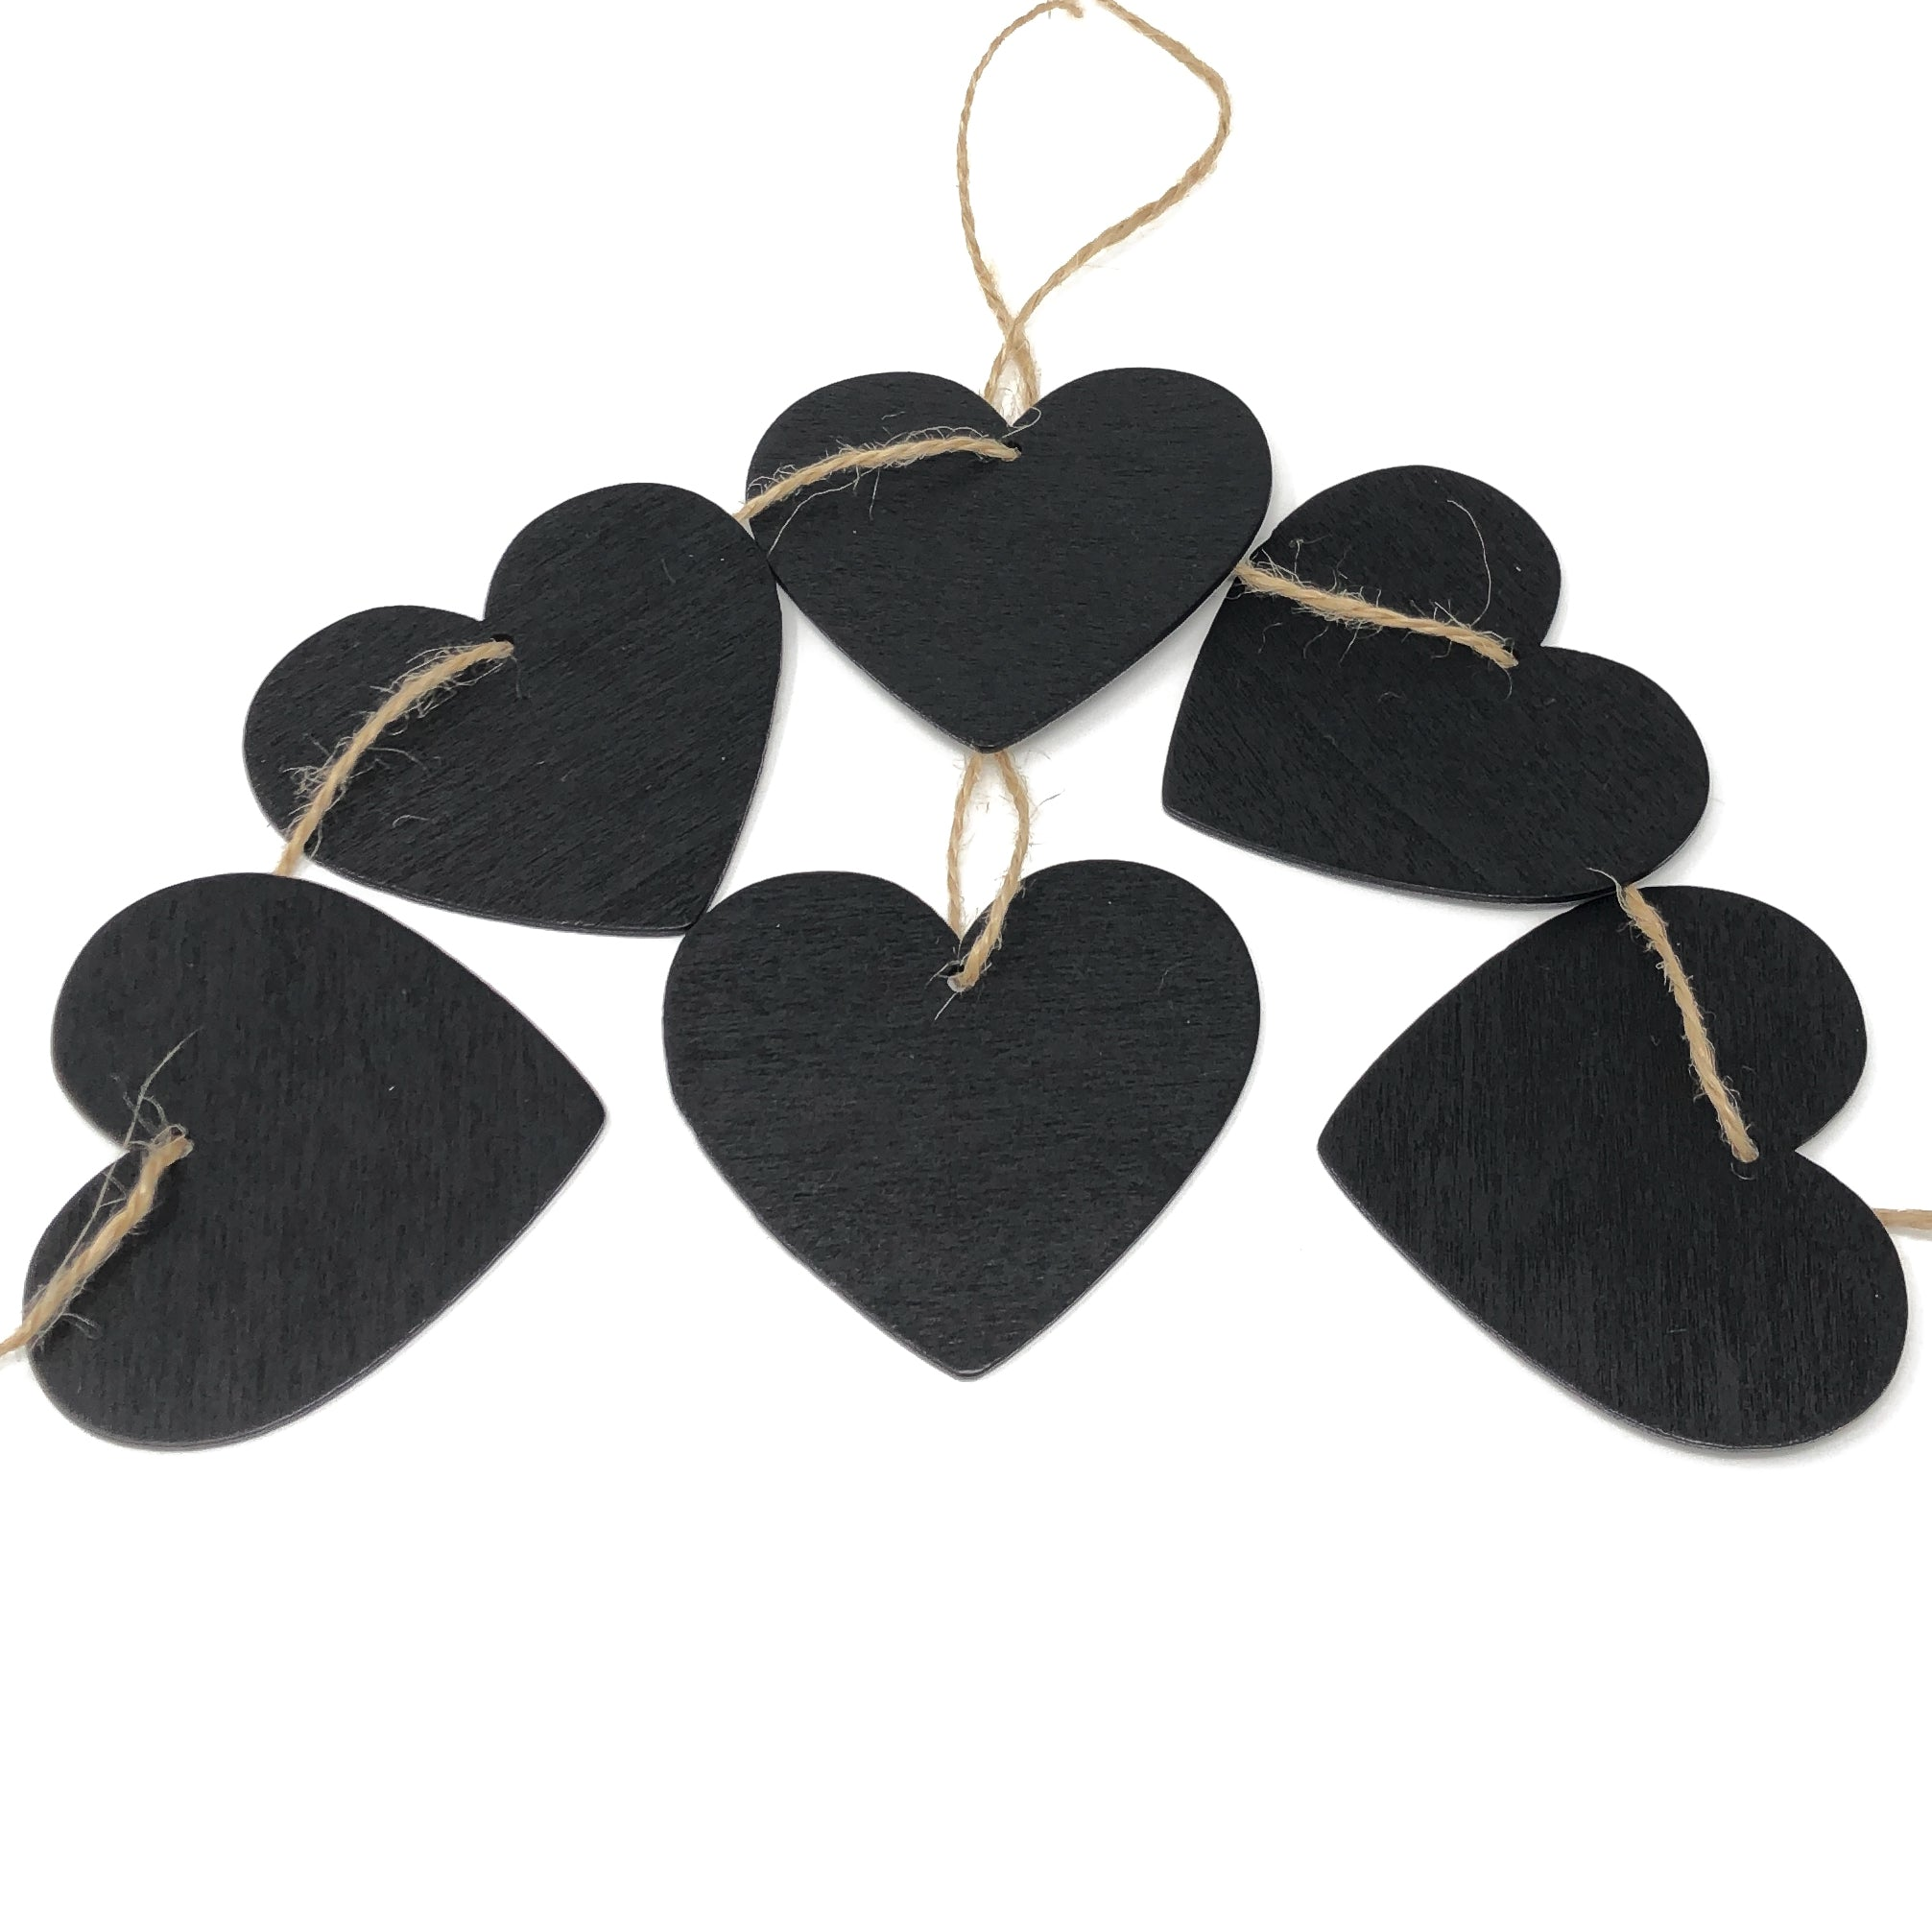 Mini Wooden Chalkboard Hearts for Wedding Table Name Tags